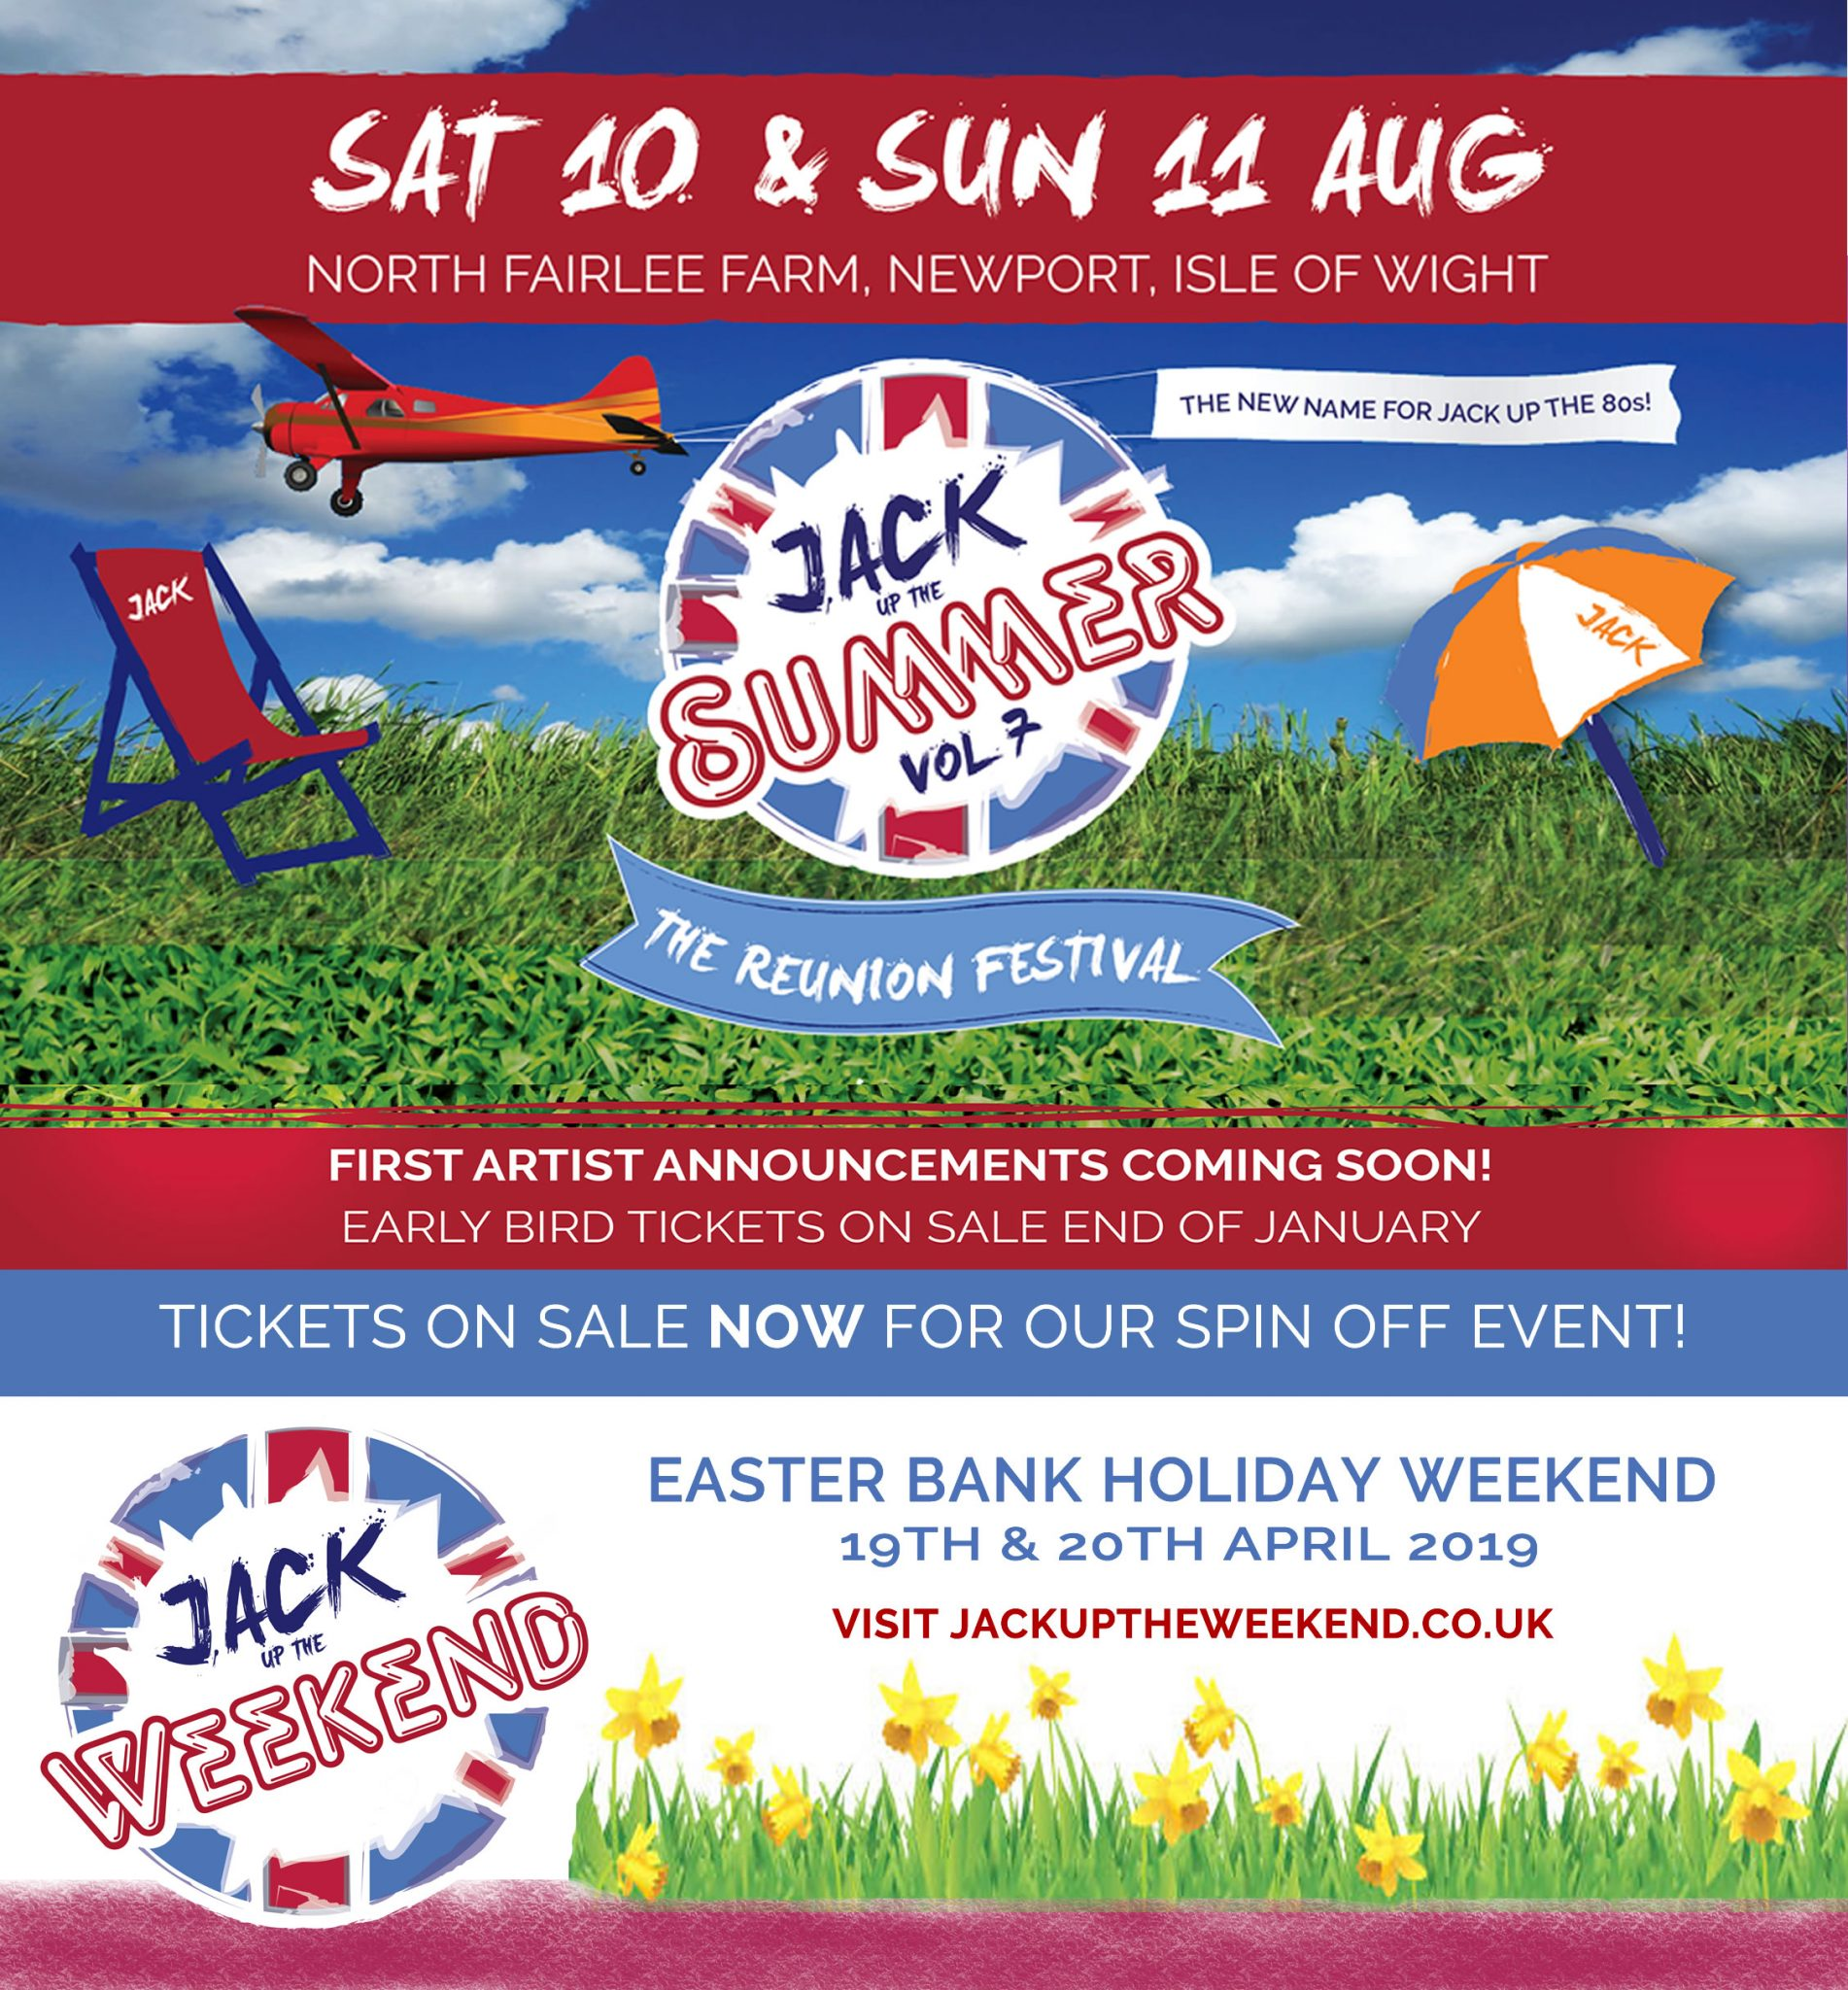 Jack Up The Summer, the family-friendly throwback festival takes place on 10th & 11th August 2019. Tickets on sale soon!